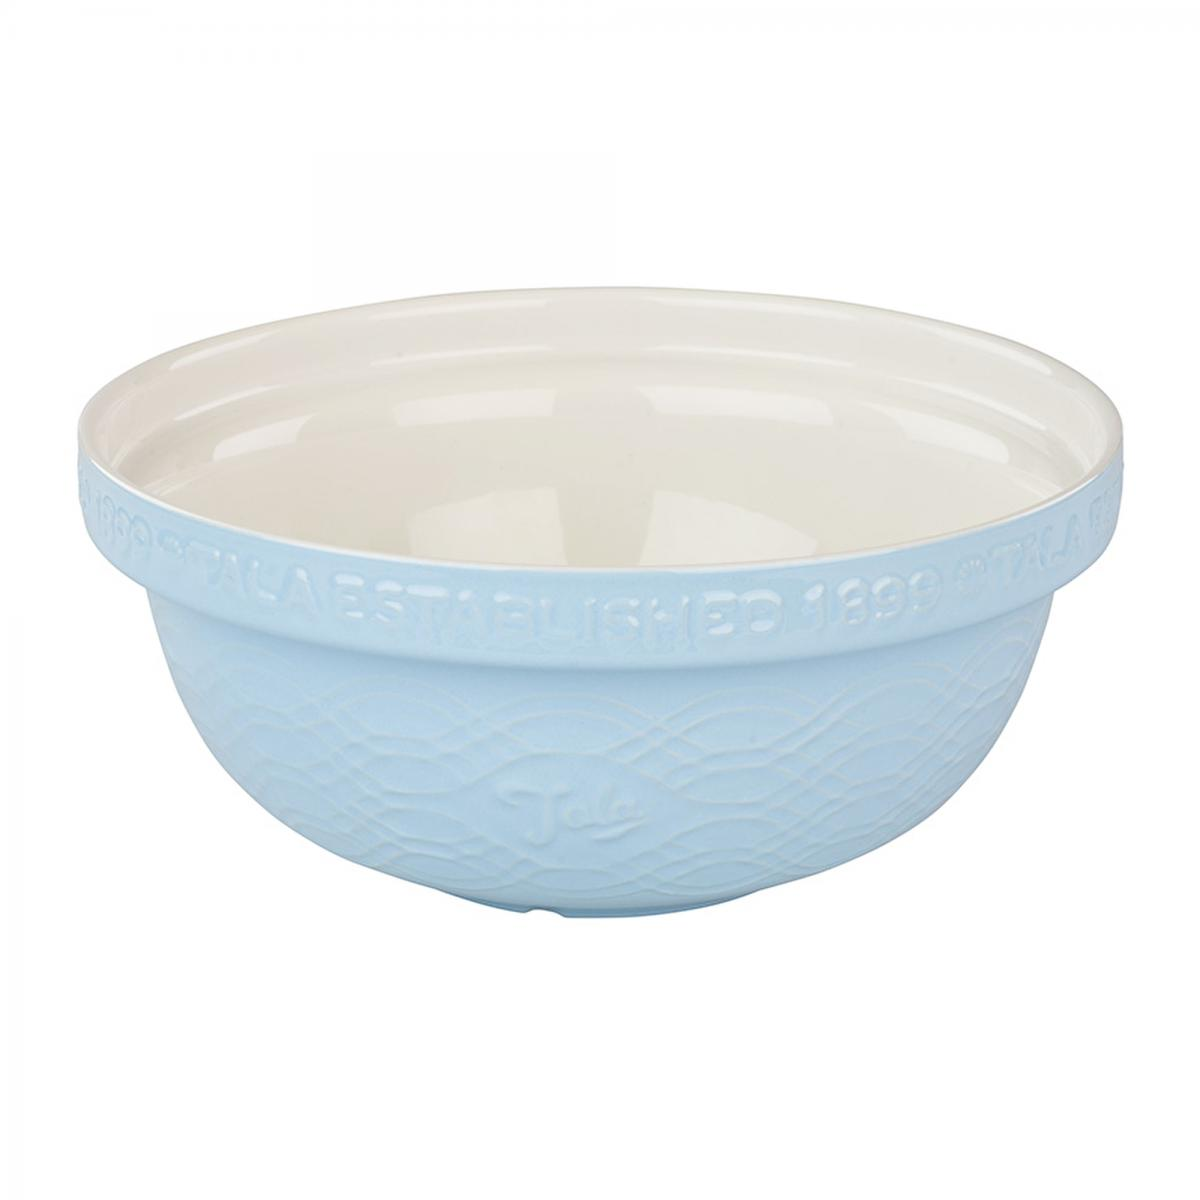 Originals Blue Stoneware Mixing Bowl 30cm – Now Only £15.00